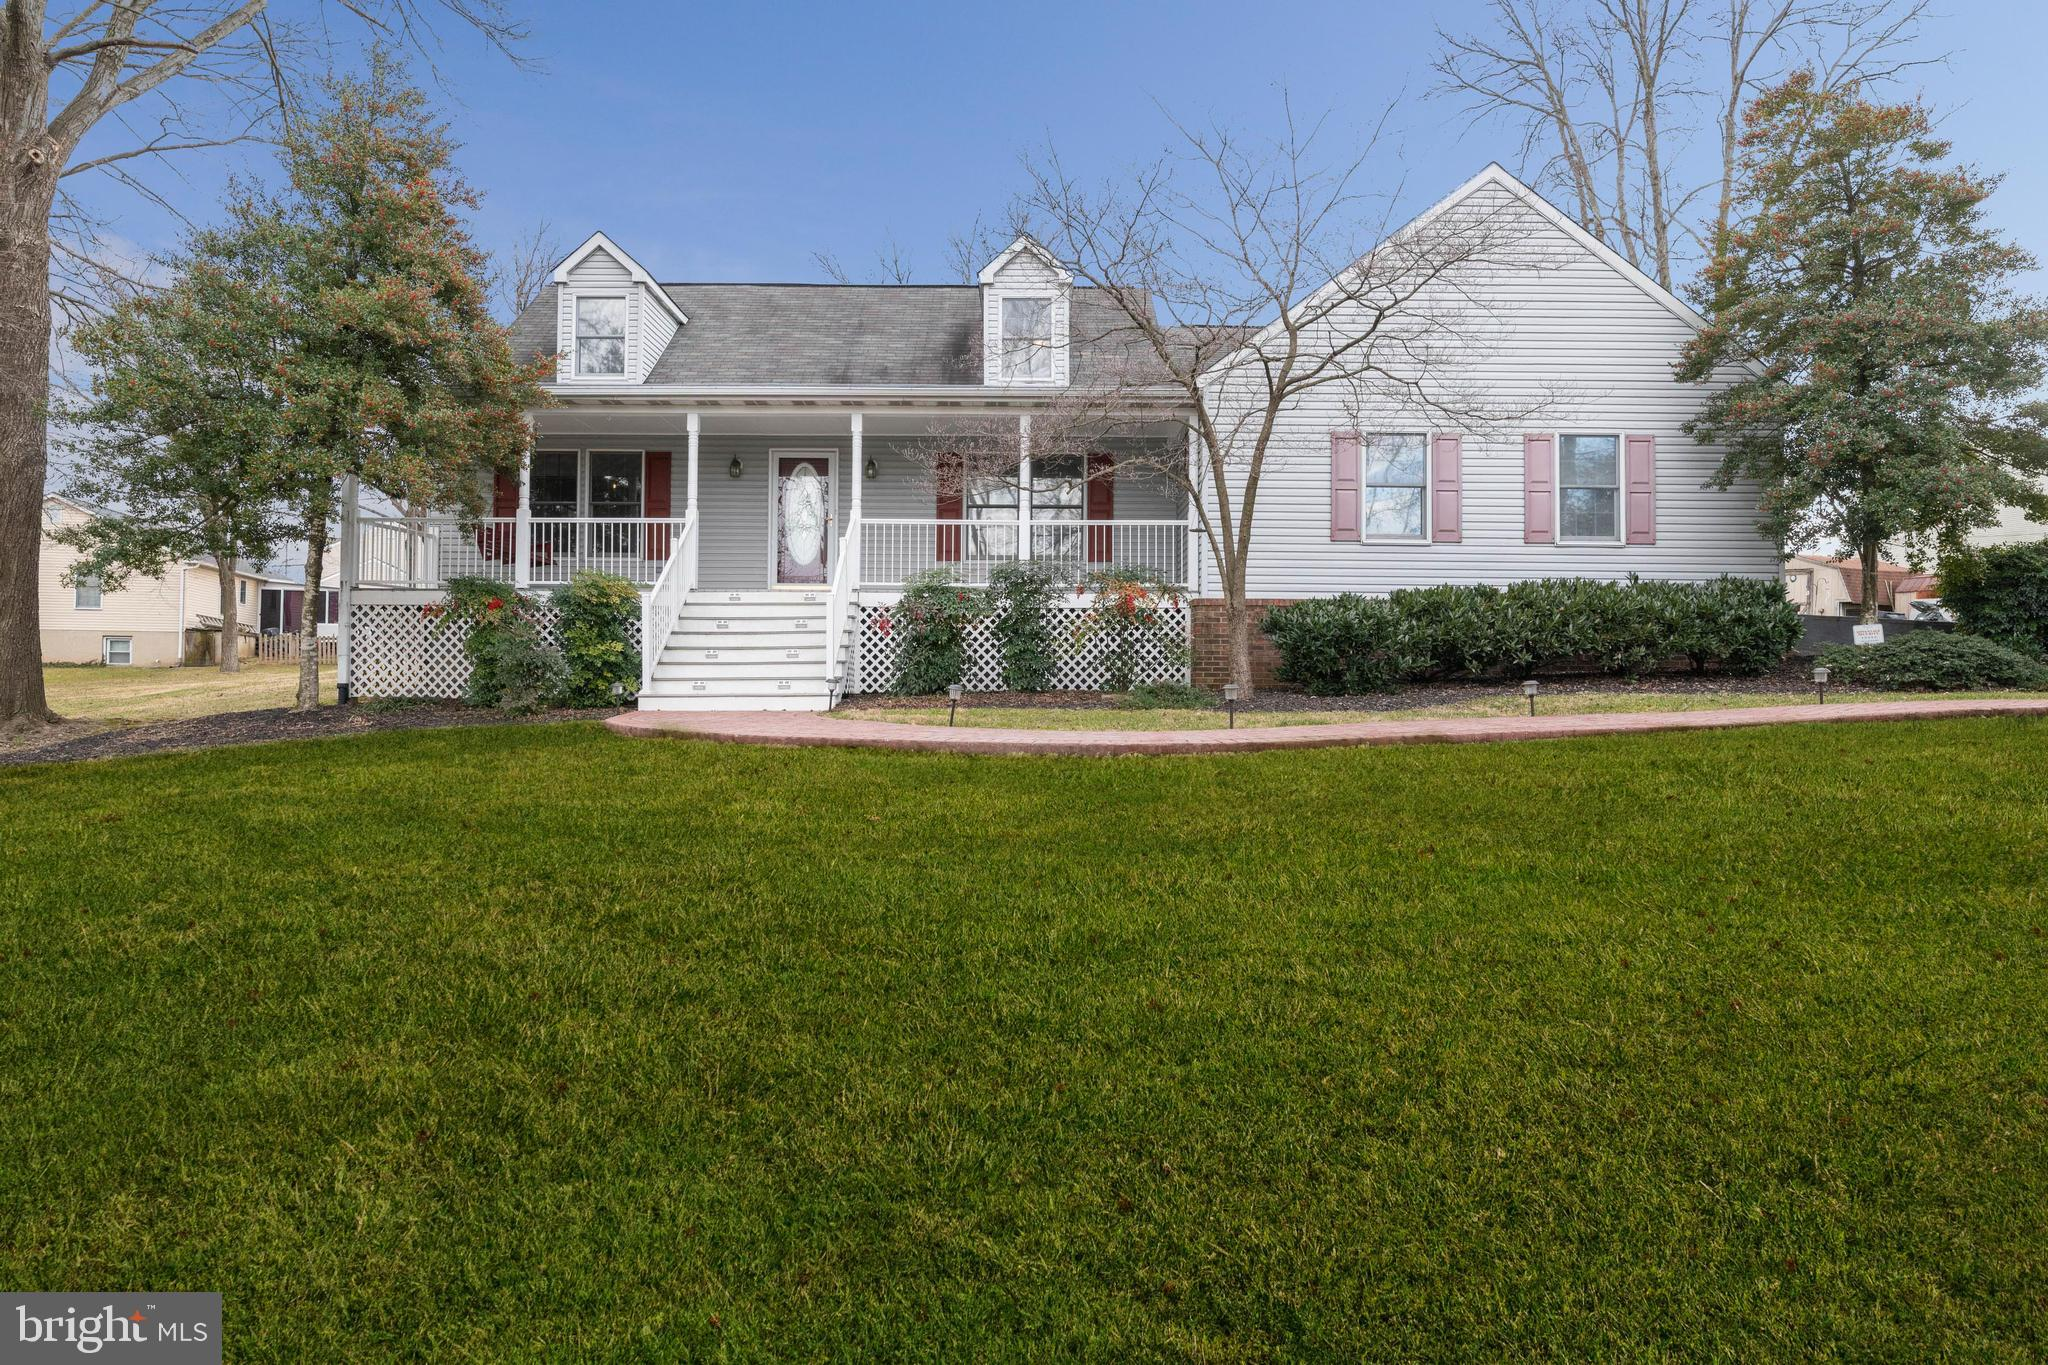 Welcome Home To 424 Barbersville Road.  LOOK NO FURTHER, HERE IS THE ONE YOU HAVE BEEN WAITING FOR!